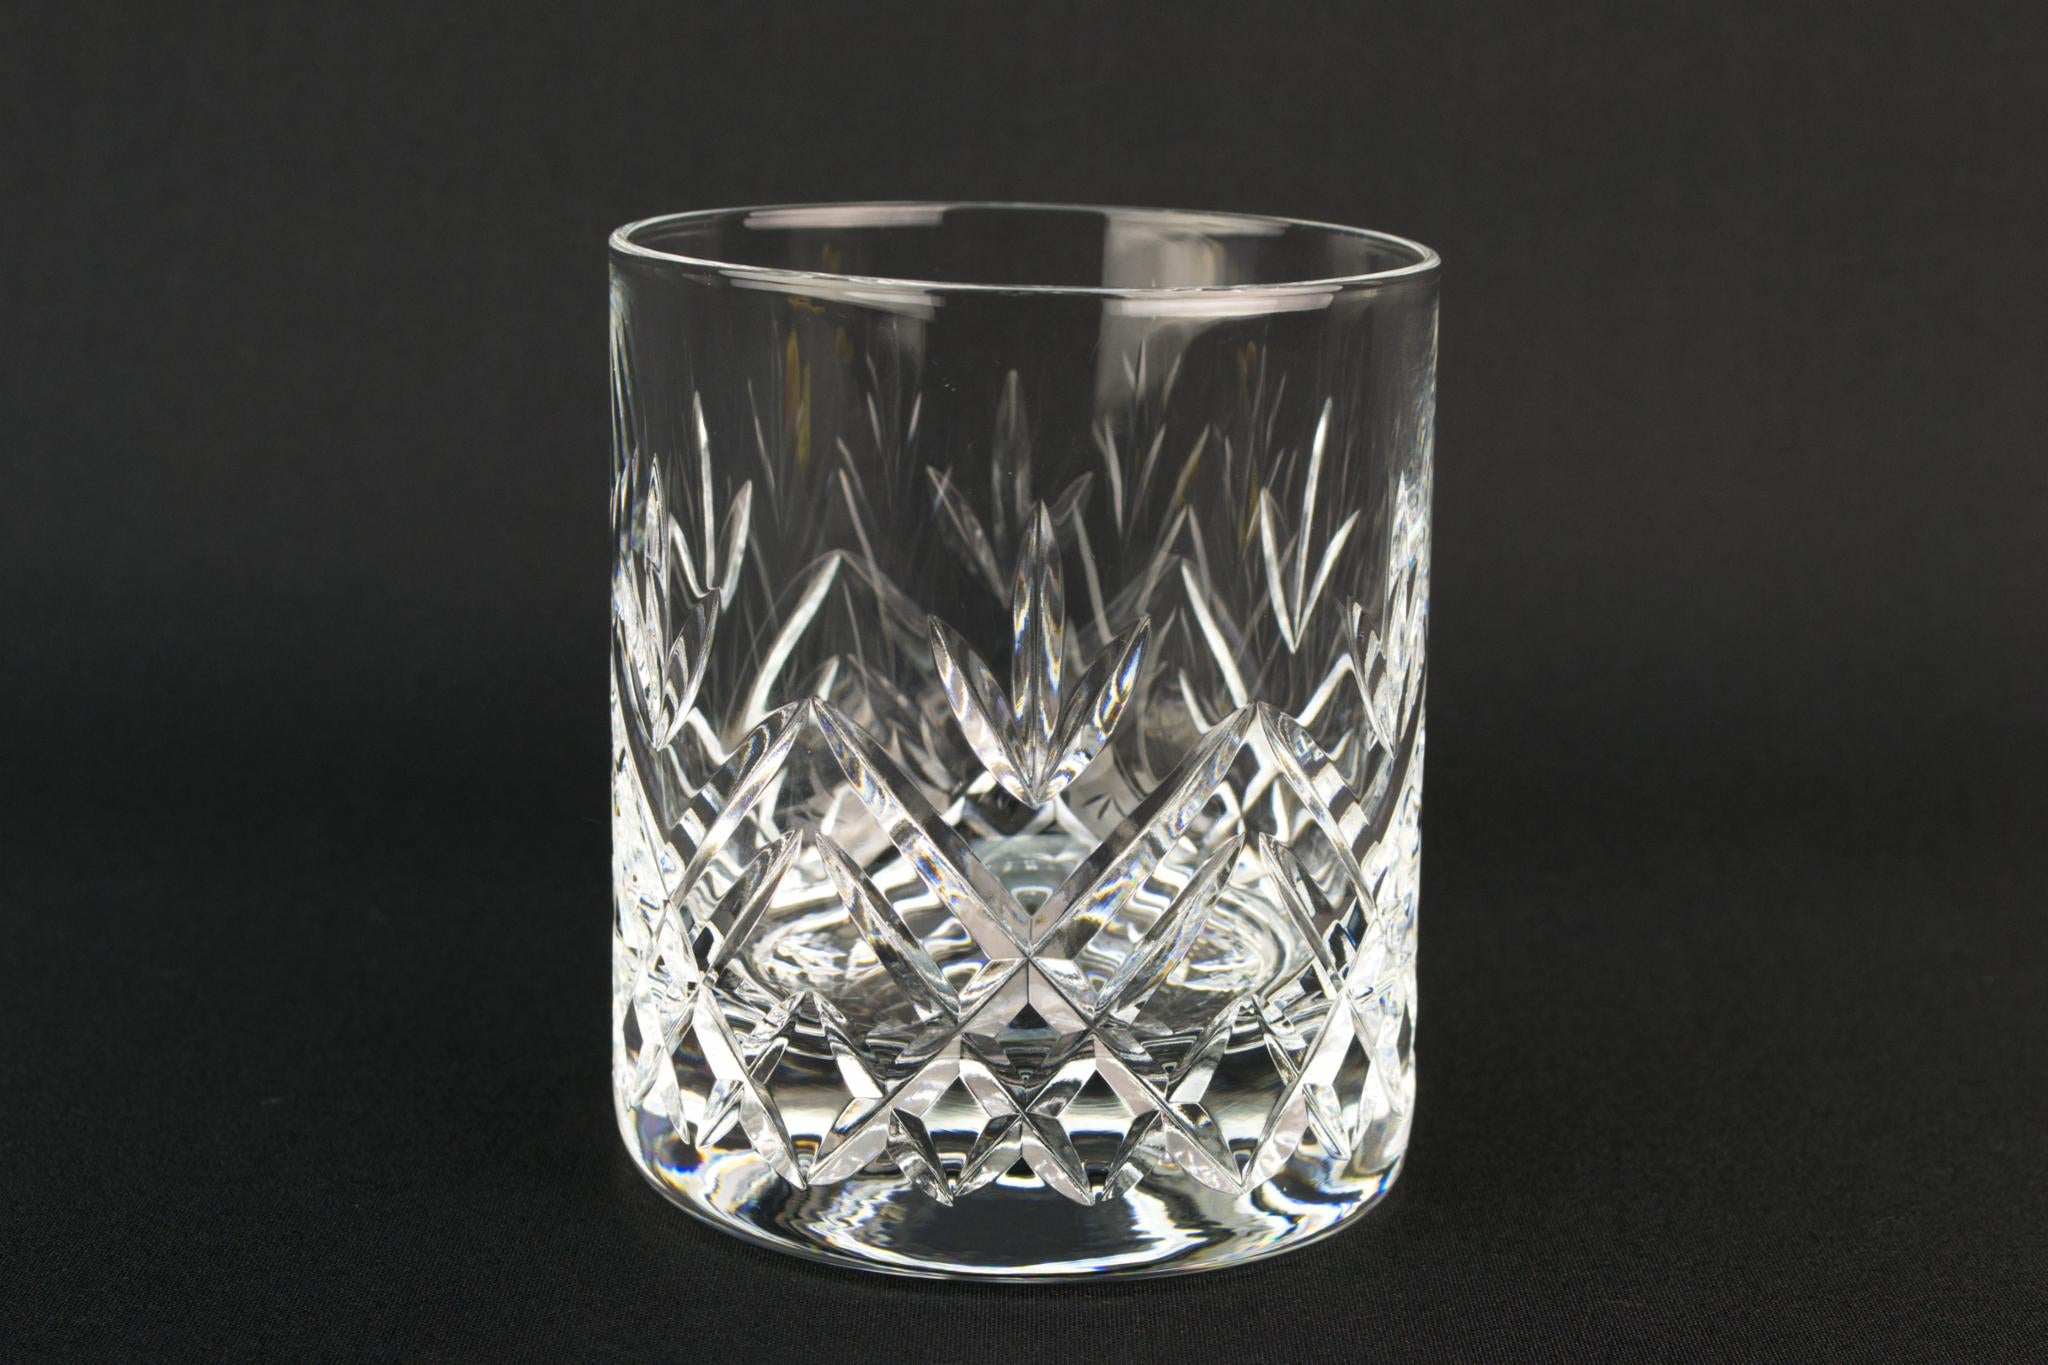 6 Edinburgh Crystal Whisky Glasses